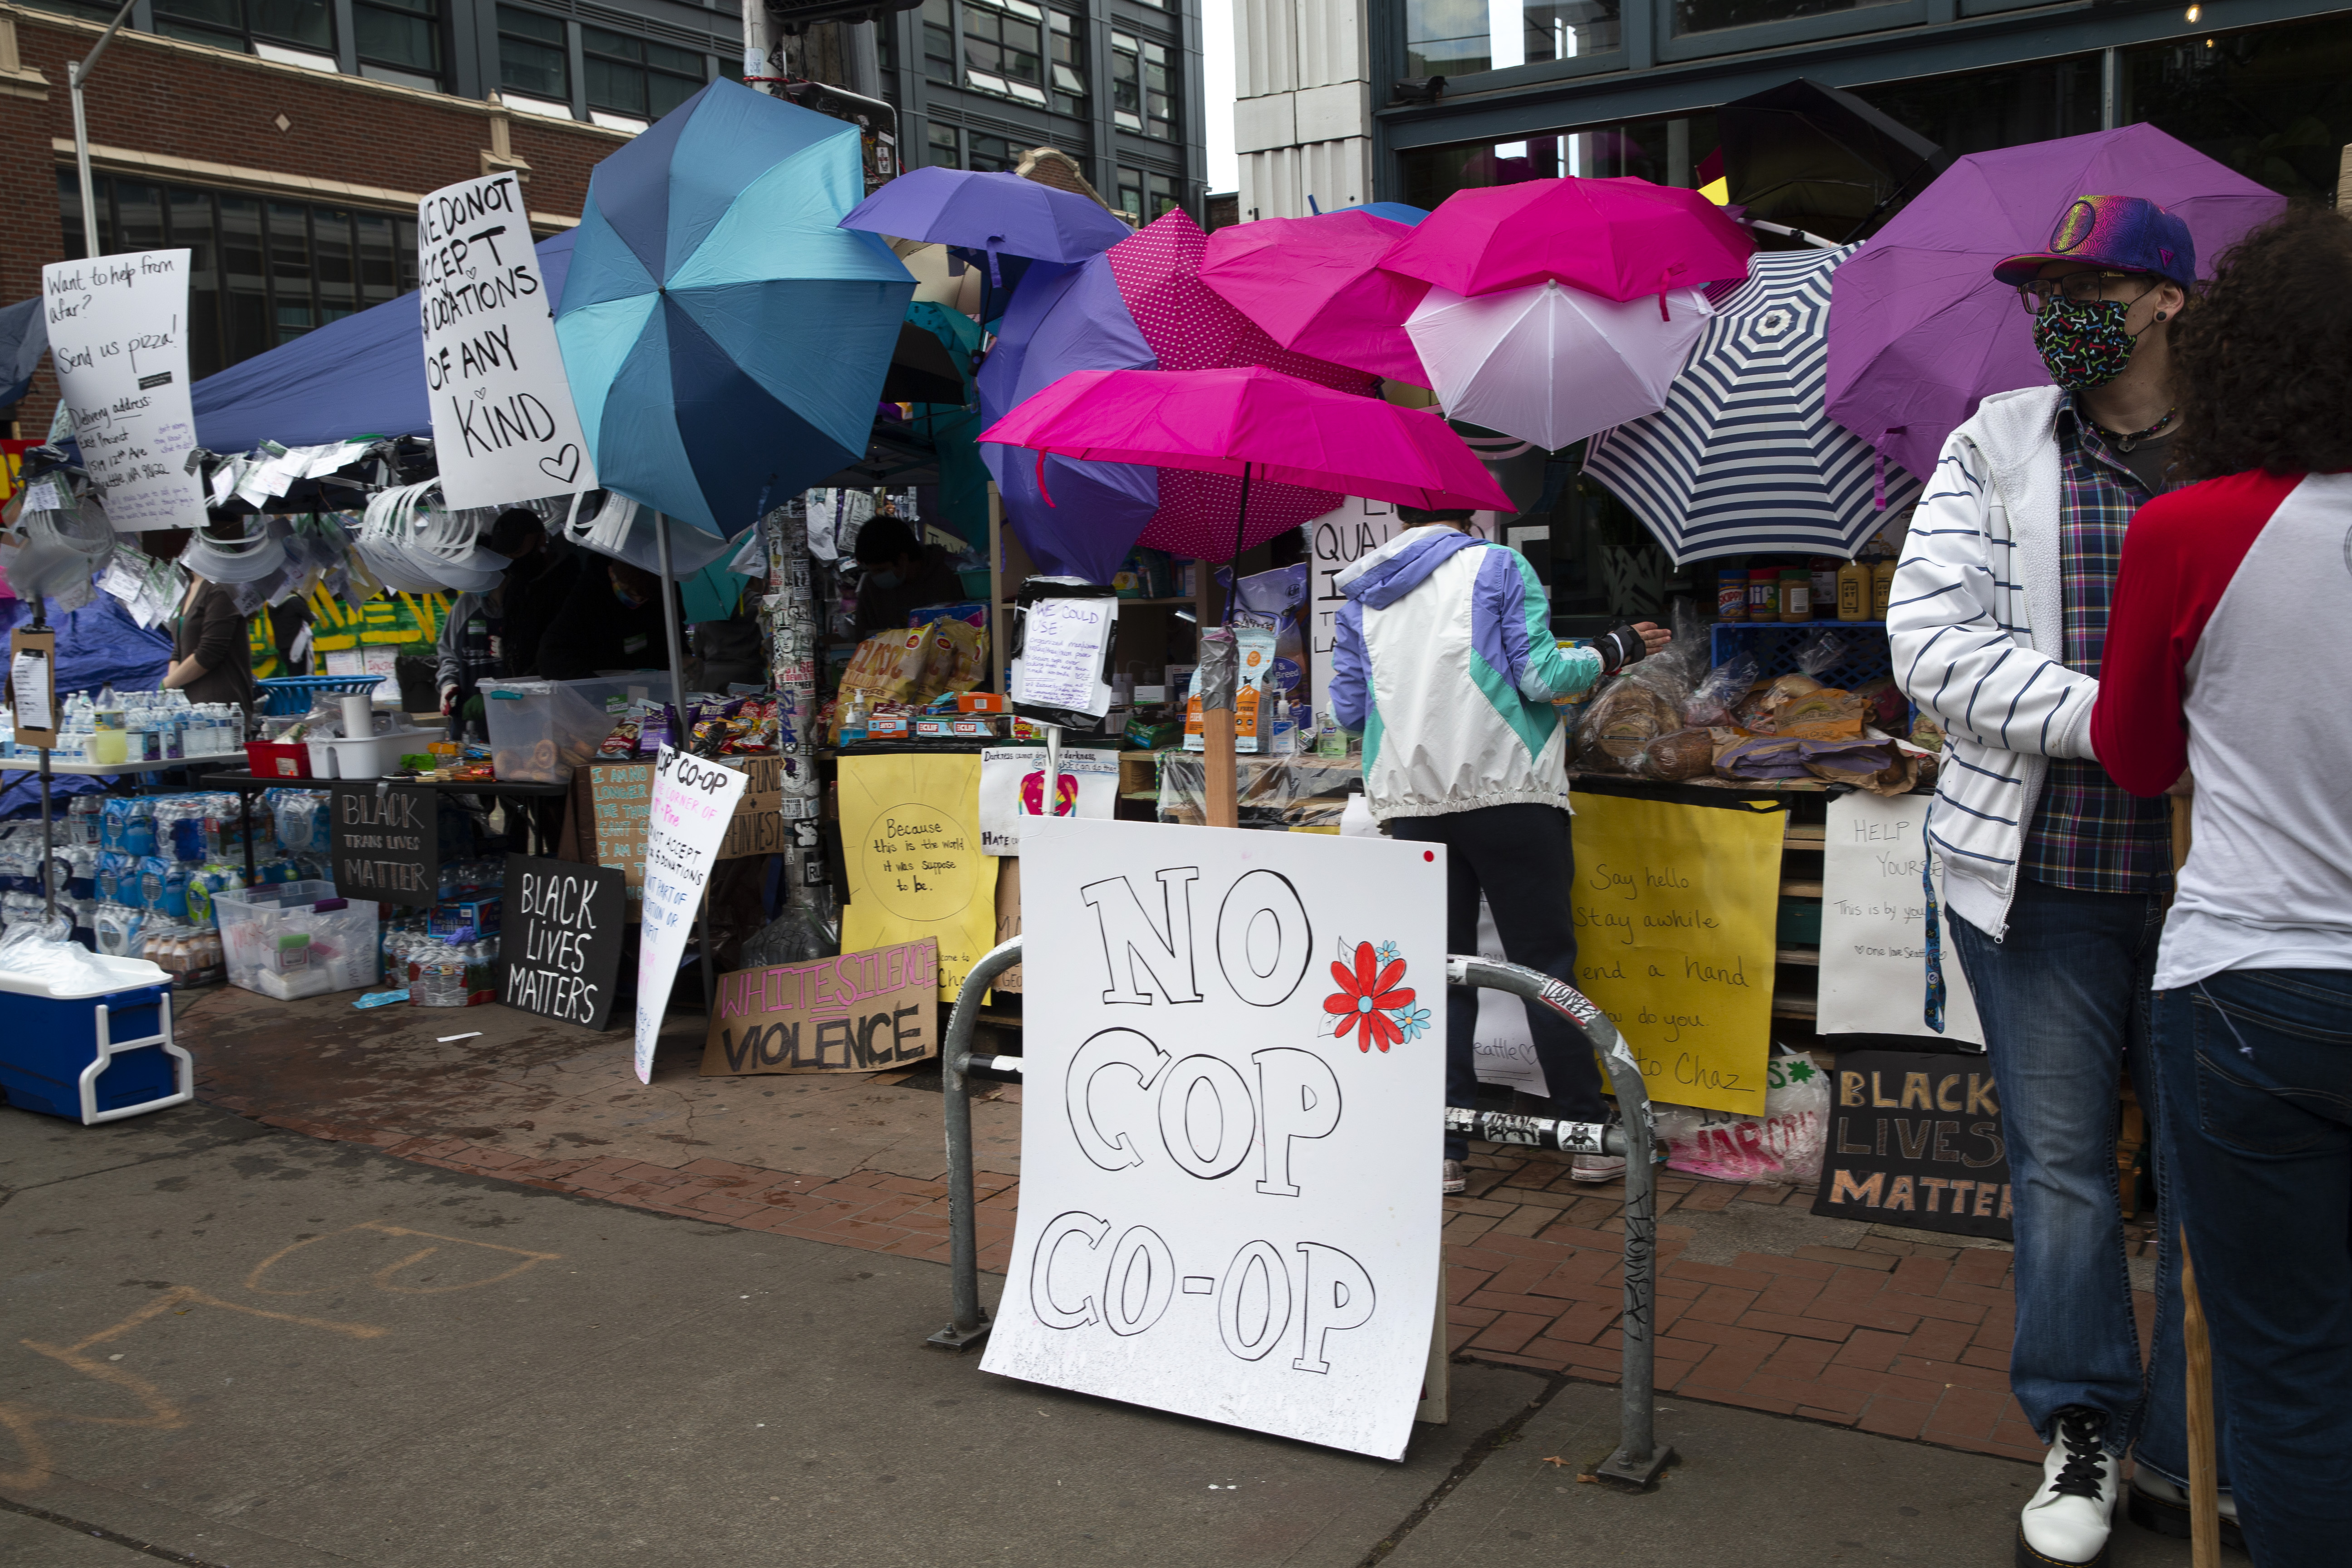 Many stands offering free items have been set up including the No Cop Co-op in an area dubbed the Capitol Hill Autonomous Zone (CHAZ) on June 12, 2020 in Seattle.(Photo: Karen Ducey/Getty Images)